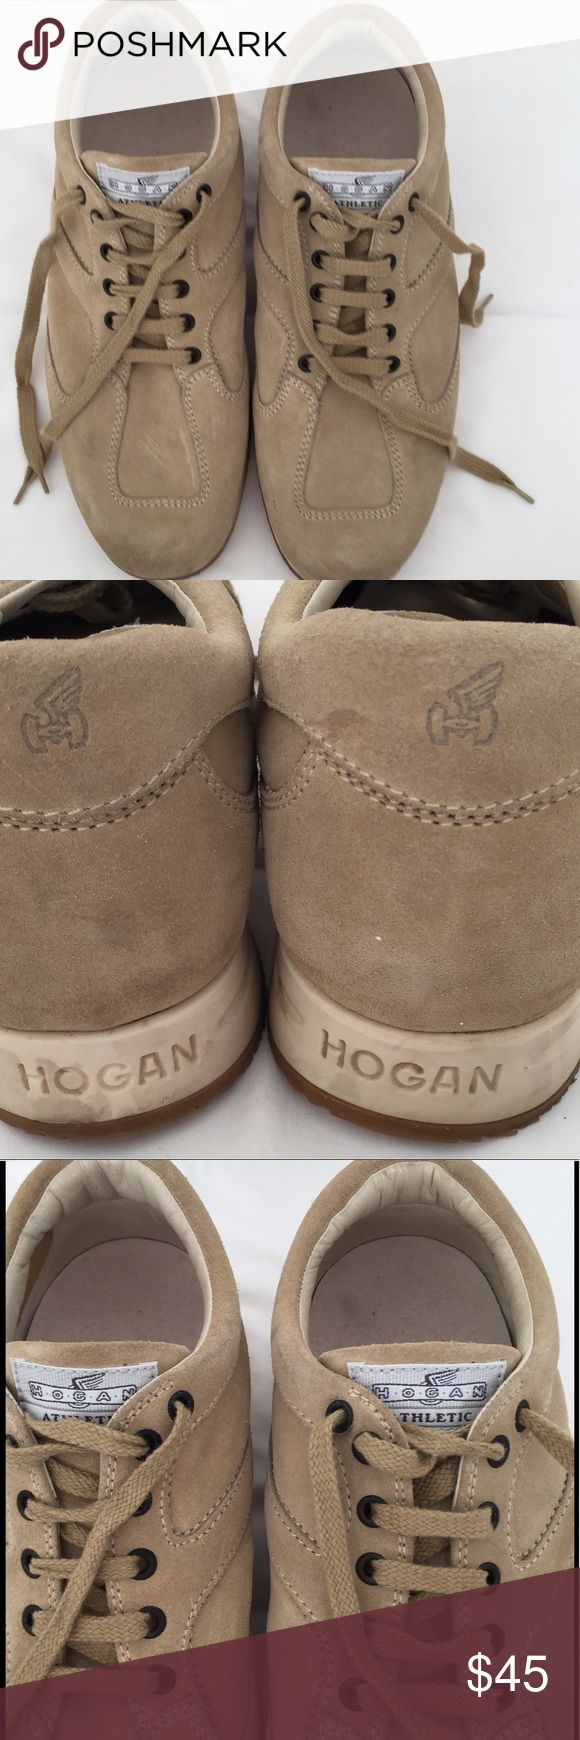 "Hogan Men's Beige Suede Sneakers Size IT 8 US 9 Hogan men's sneakers - beige suede - white base - tan grooved rubber soles - 1"" inner wedge foot beds - Hogan label tape on tongue - excellent used condition - worn only a few times - clean uppers and foot beds - very minor soiling to the base and very minor wear to the soles (see photos) - size IT 8 US 9 Hogan Shoes Athletic Shoes"